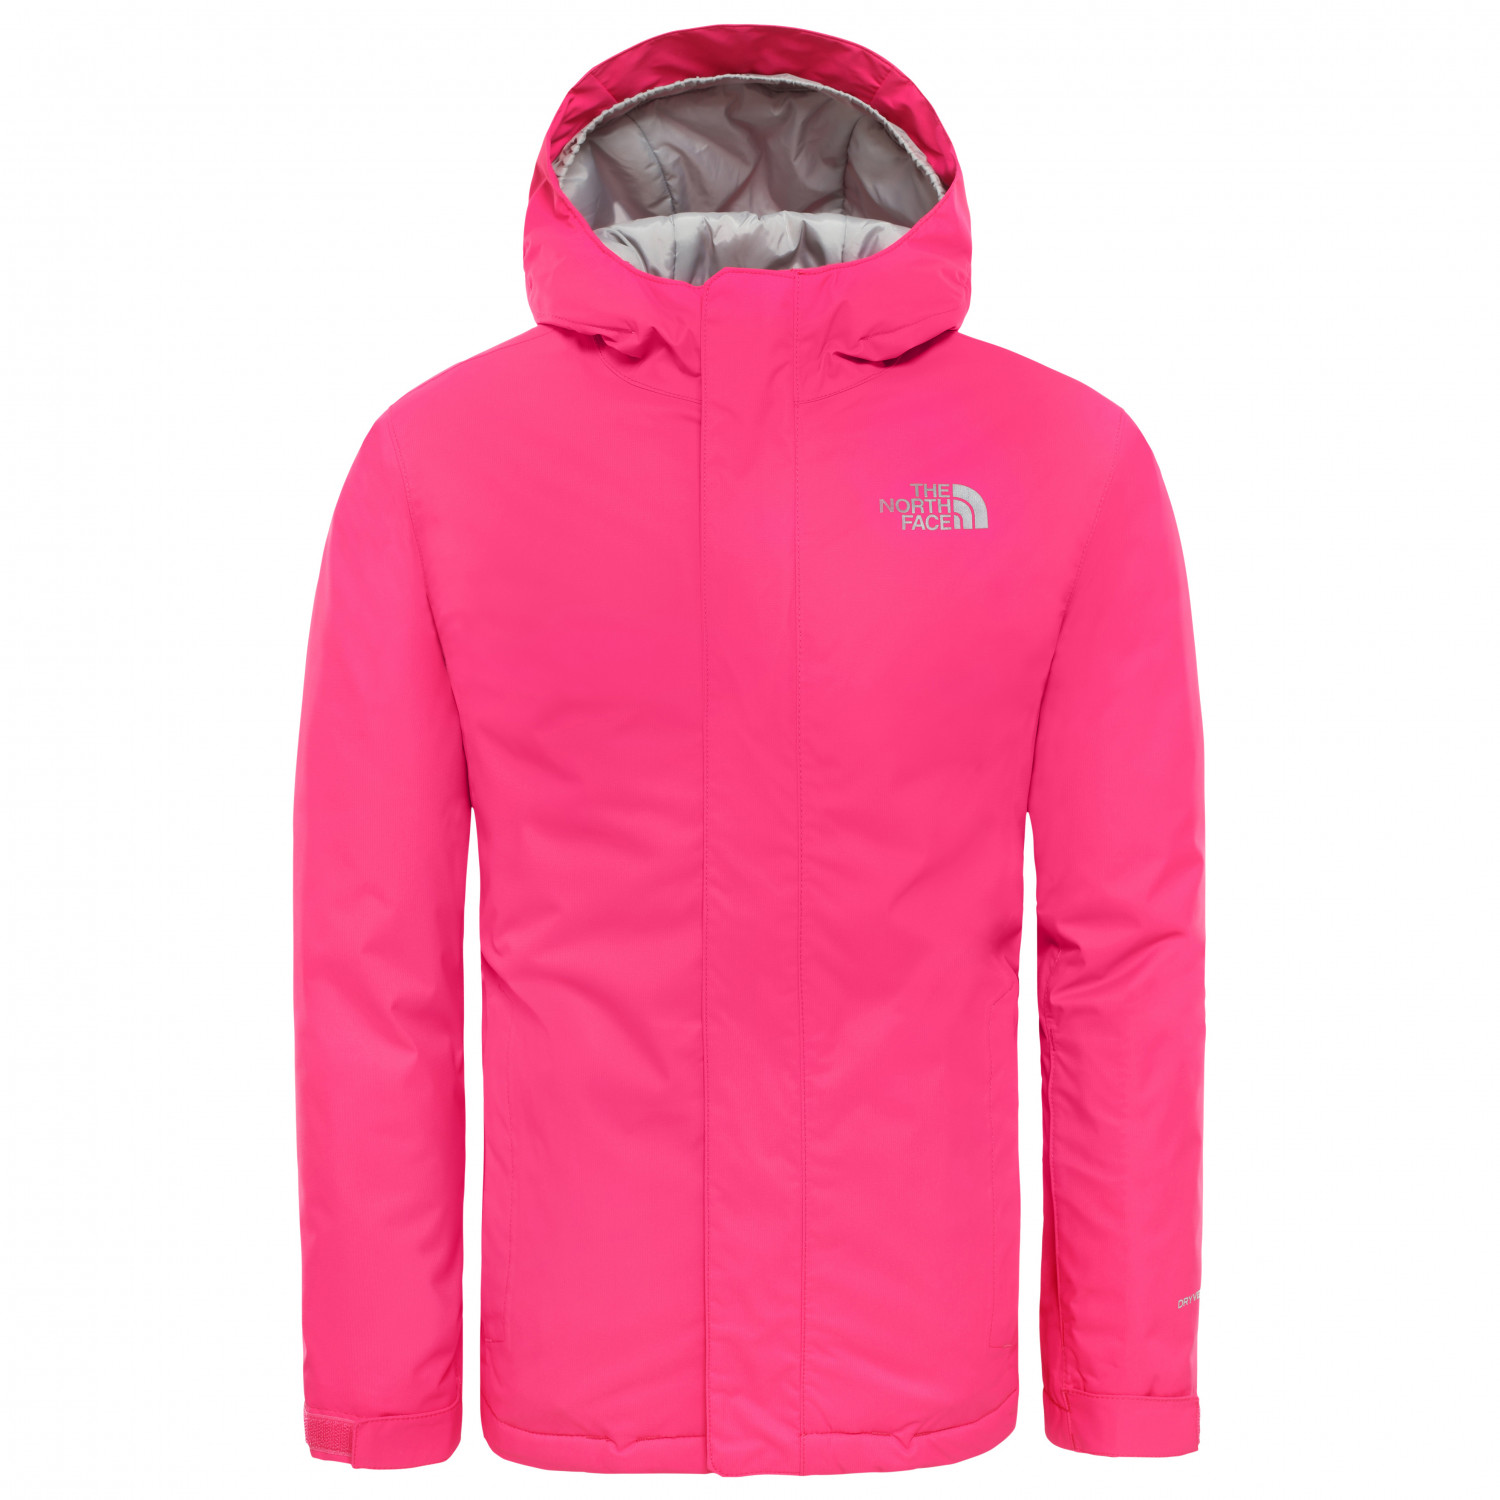 online store 1feb5 32291 The North Face Snow Quest Jacket - Skijacke Kinder ...